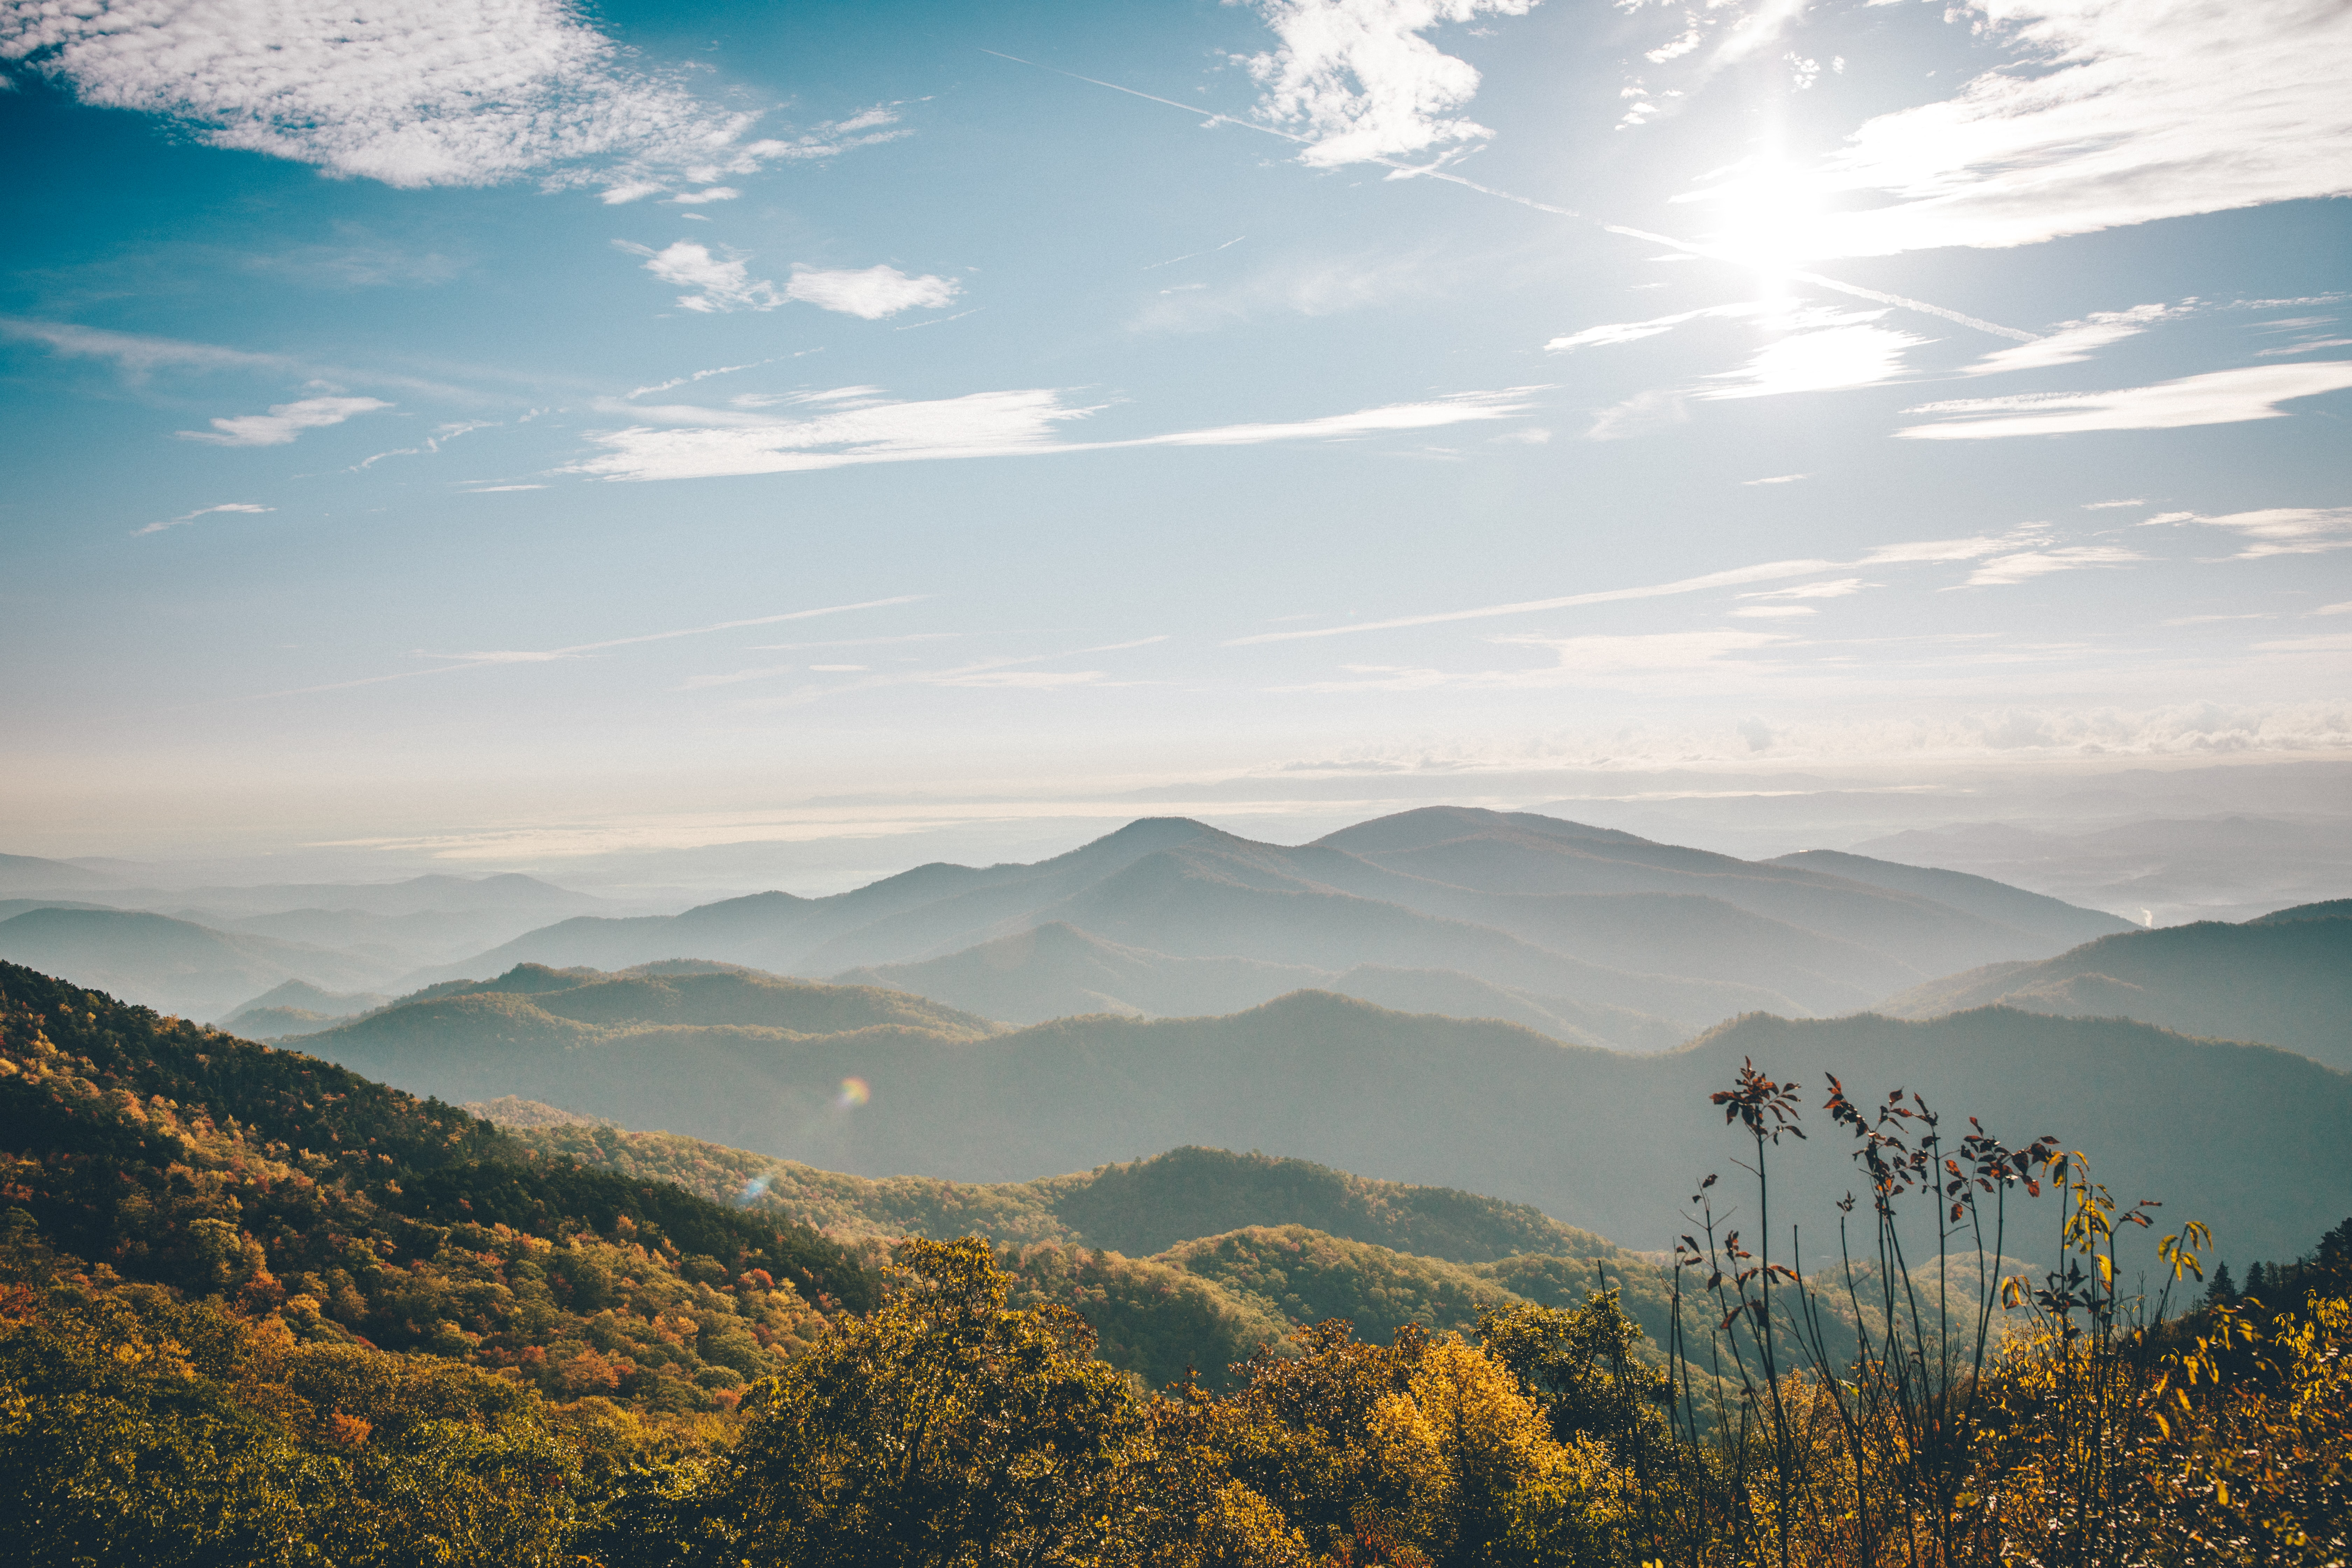 Photo by Wes Hicks on Unsplash